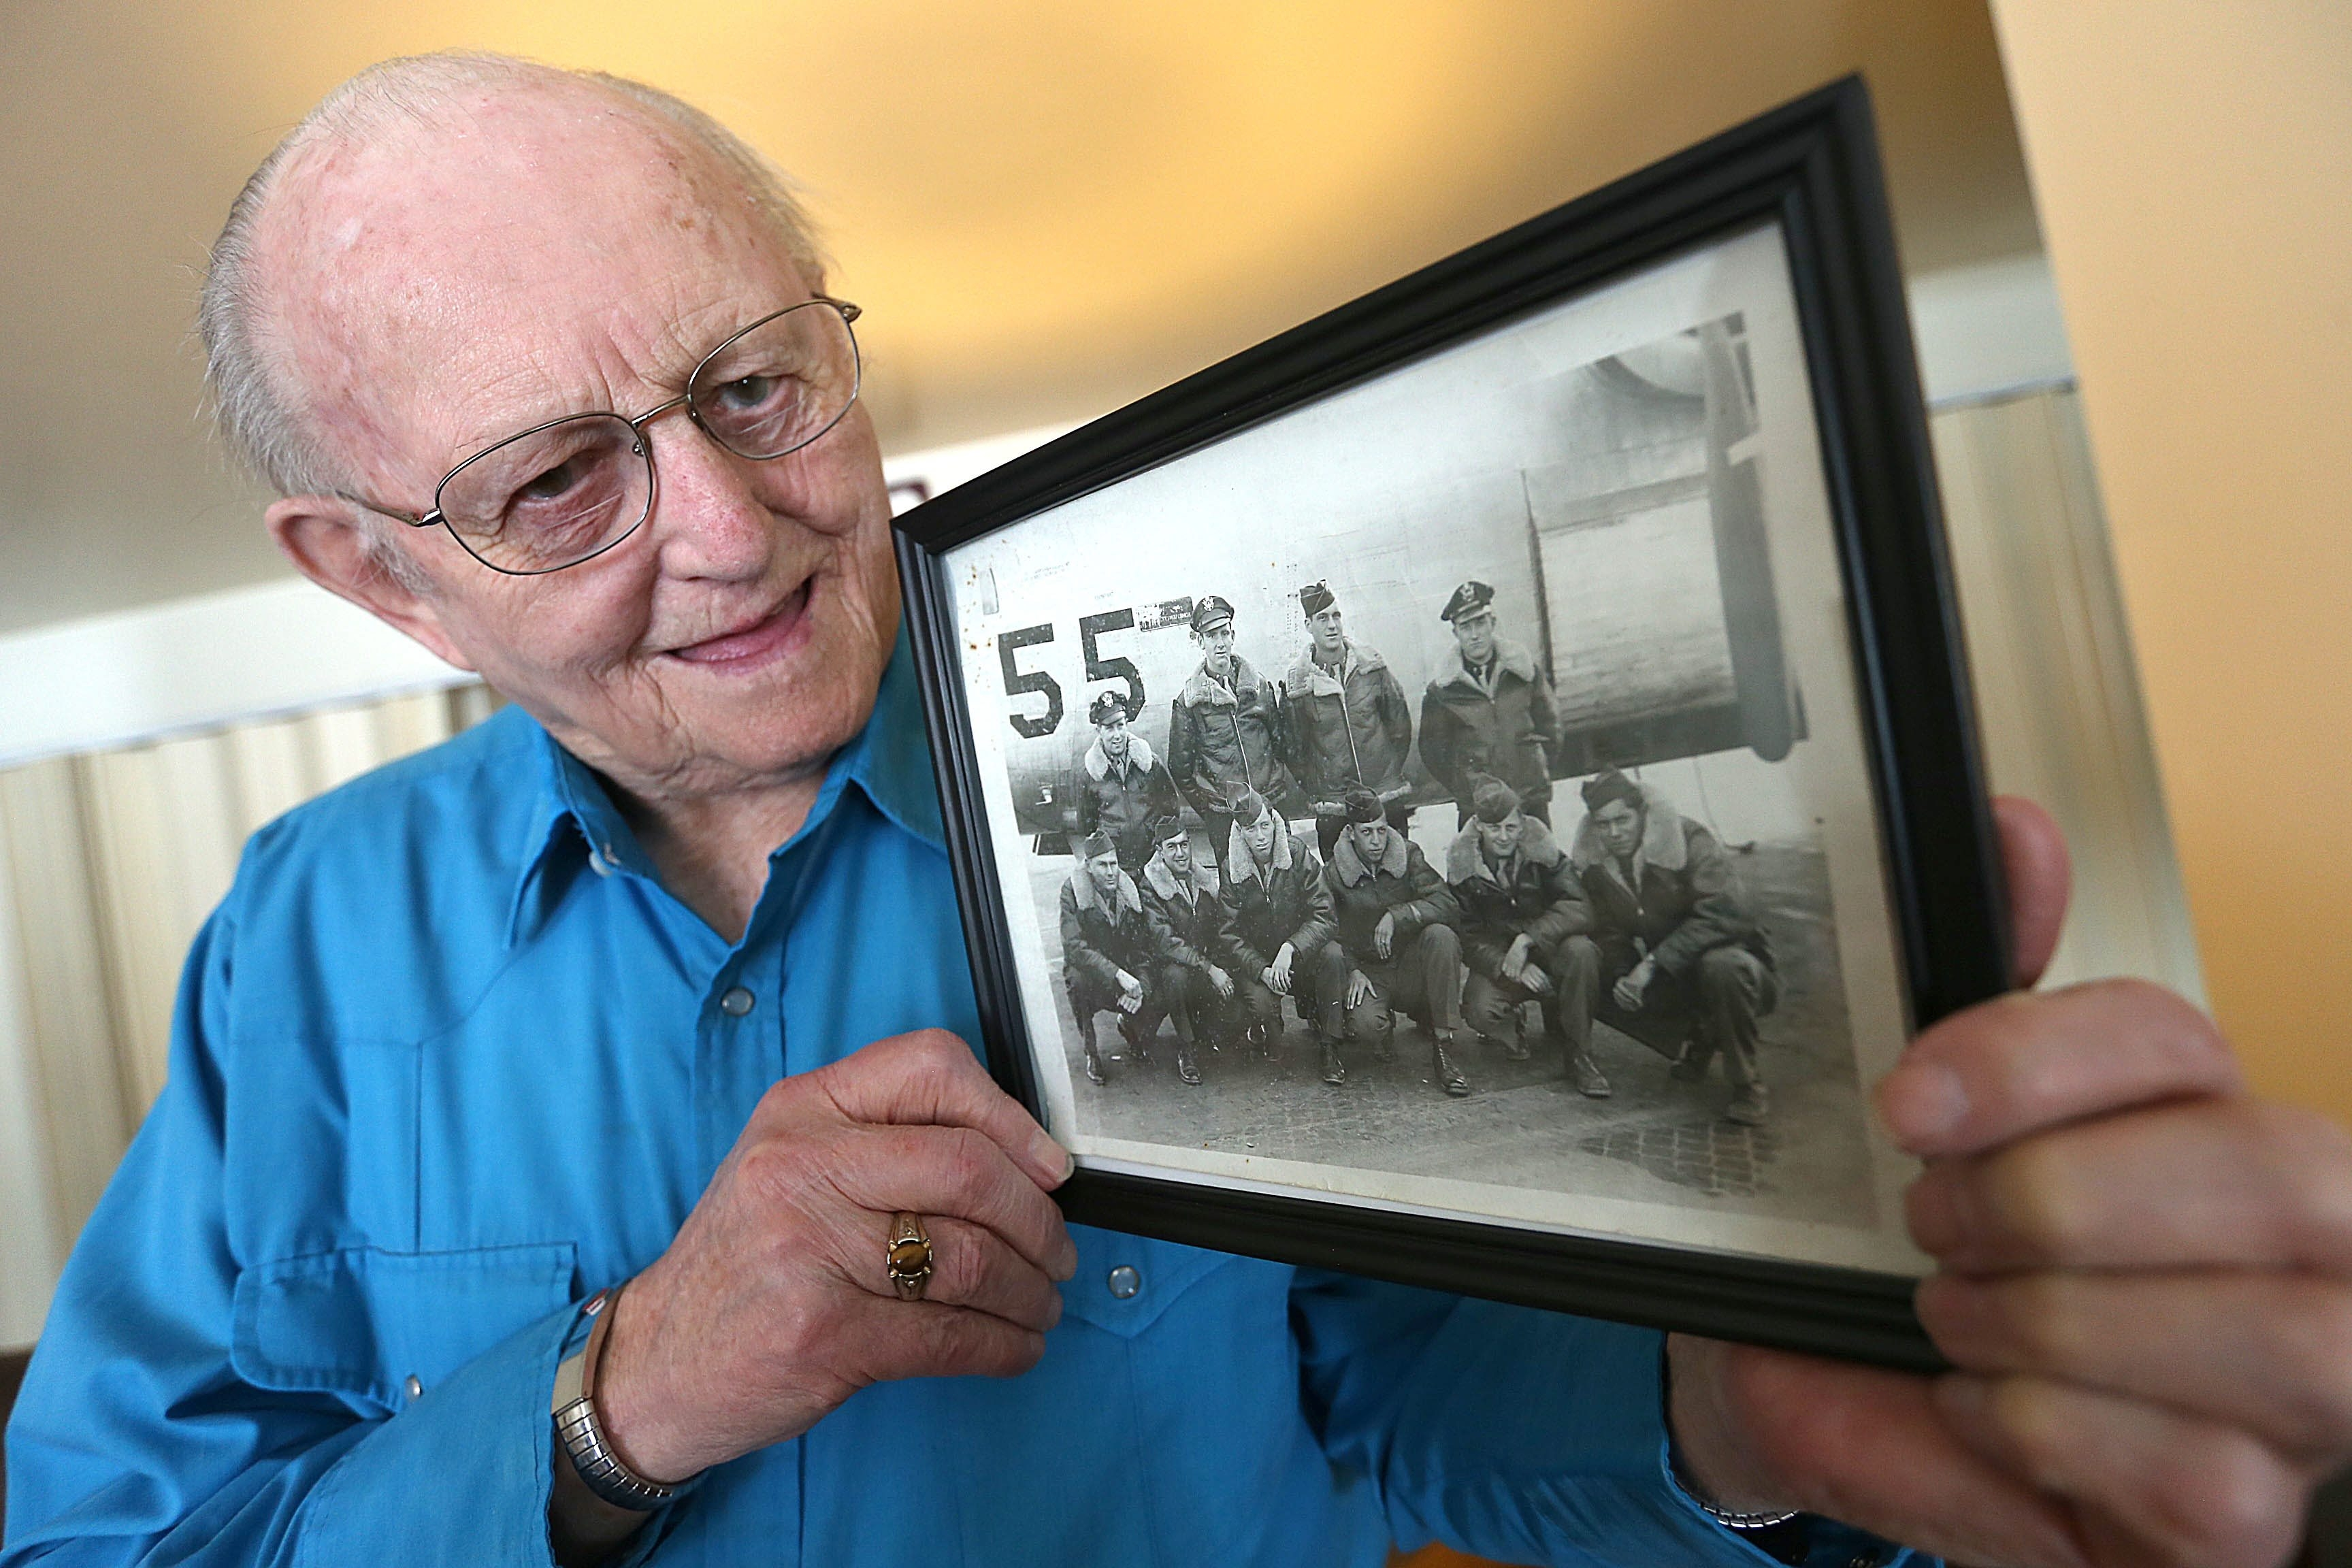 Paul E. Allan, at home in Springville with photo of his bomber crew, had flown above Hiroshima and Nagasaki in weeks before the atomic bombs were dropped on Japan.